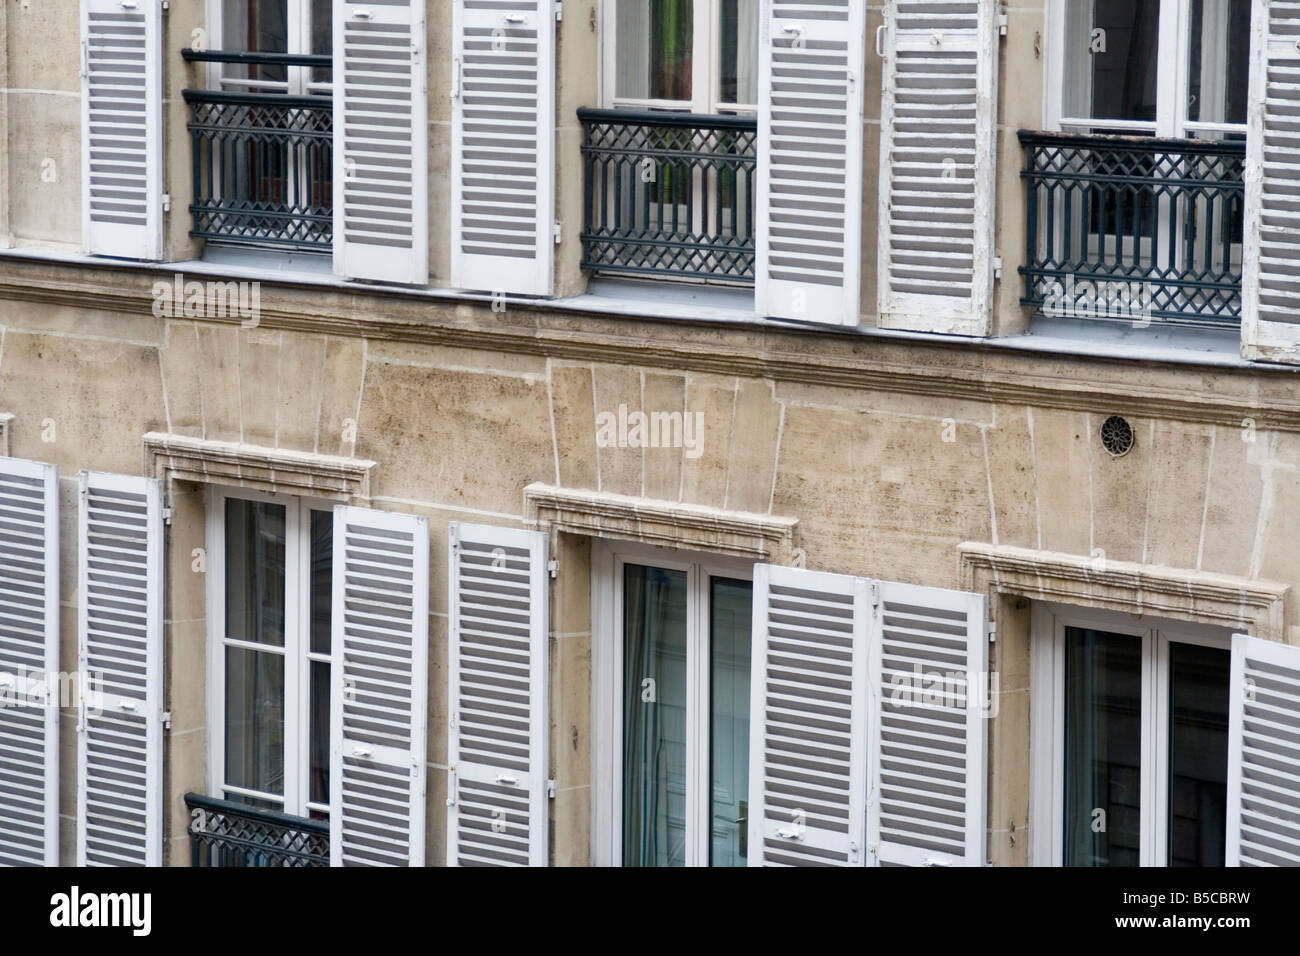 Façade windows shutters Juliet balcony metal stone building apartment condo repetition louvered paris france glass Stock Photo